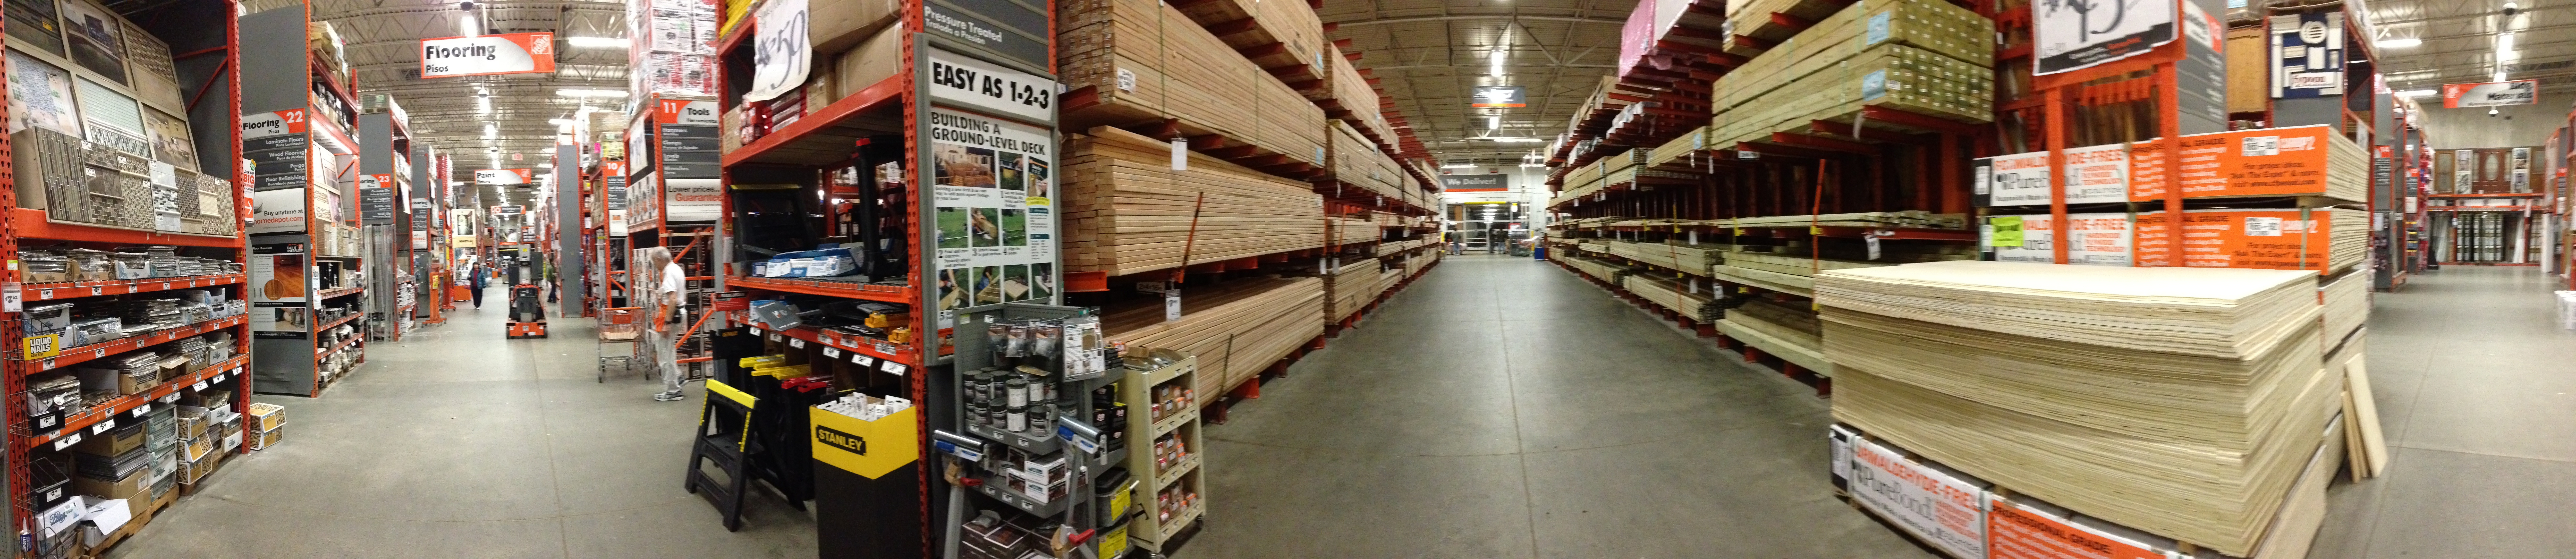 Download building highend 39 tables cheap at home depot for Craft store norwalk ct